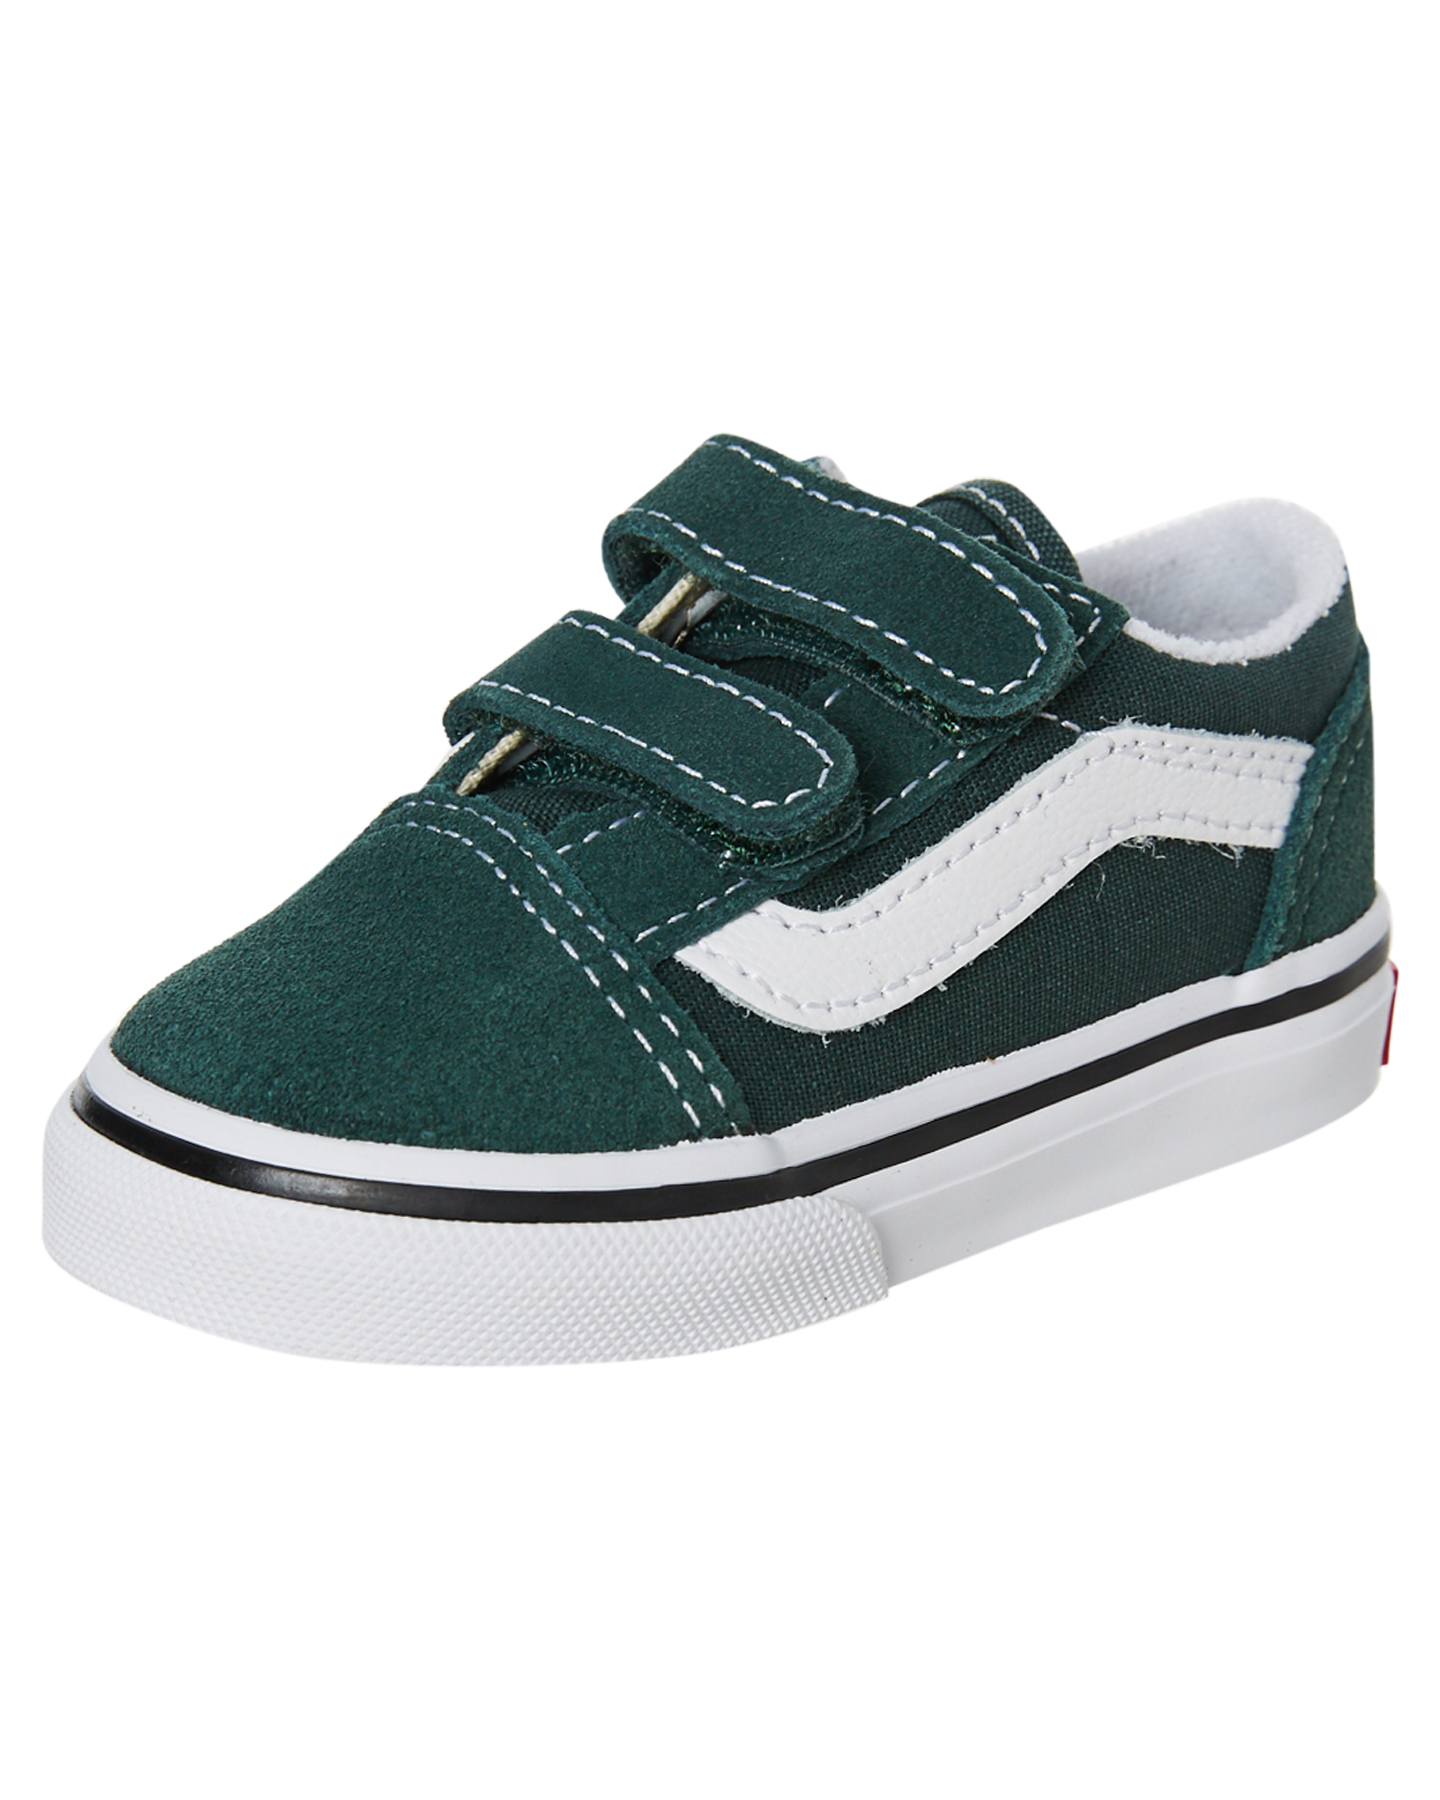 New-Vans-Girls-Kids-Old-Skool-V-Shoe-Rubber-Canvas-Black thumbnail 15